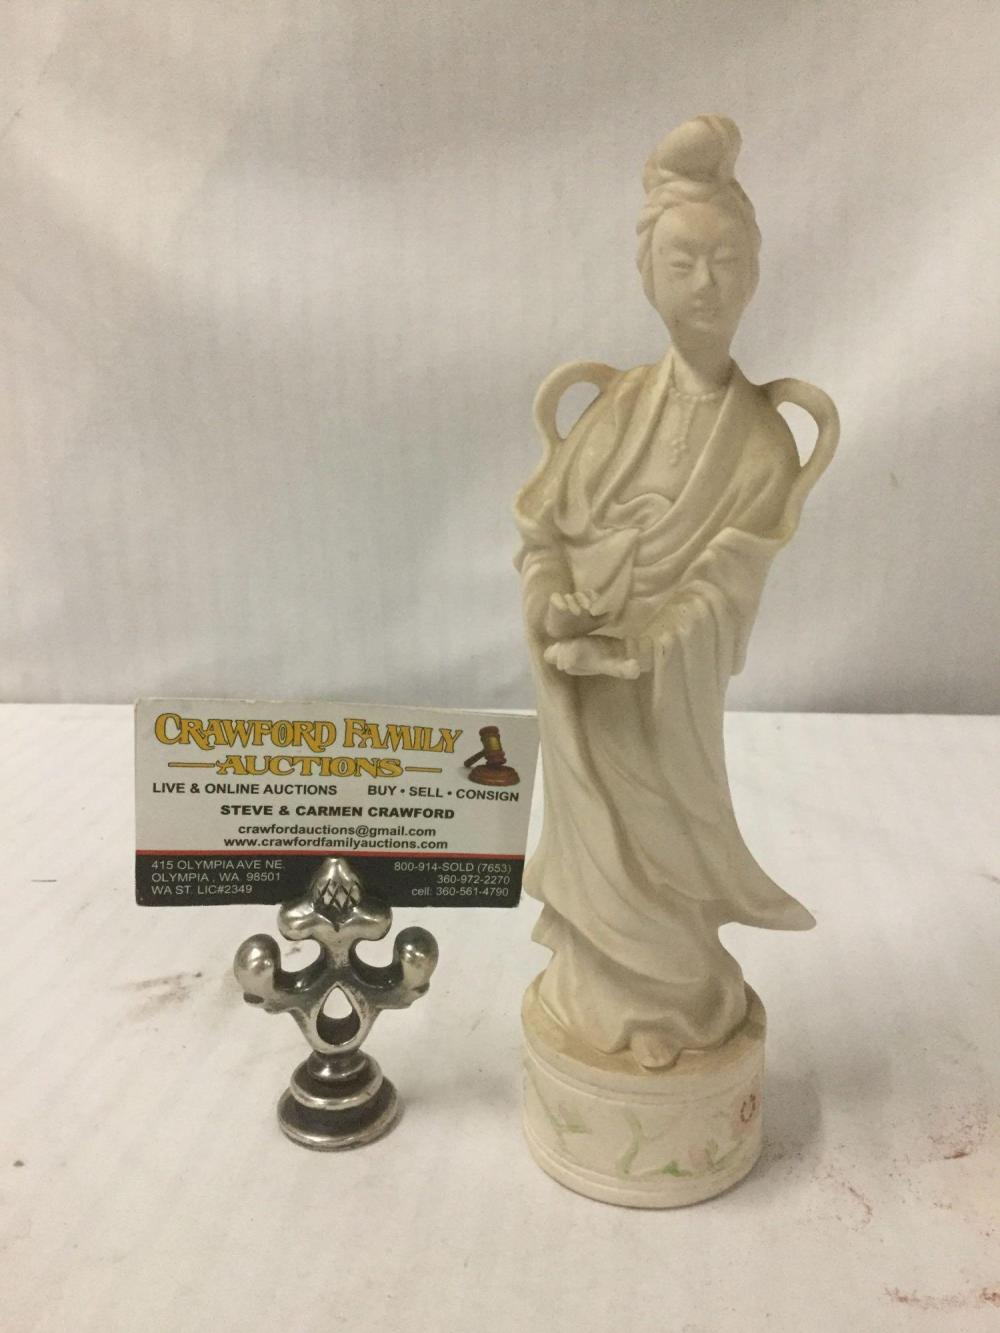 Lot 141: Vintage carved soapstone sage statue of Woman with scroll - marked on bottom